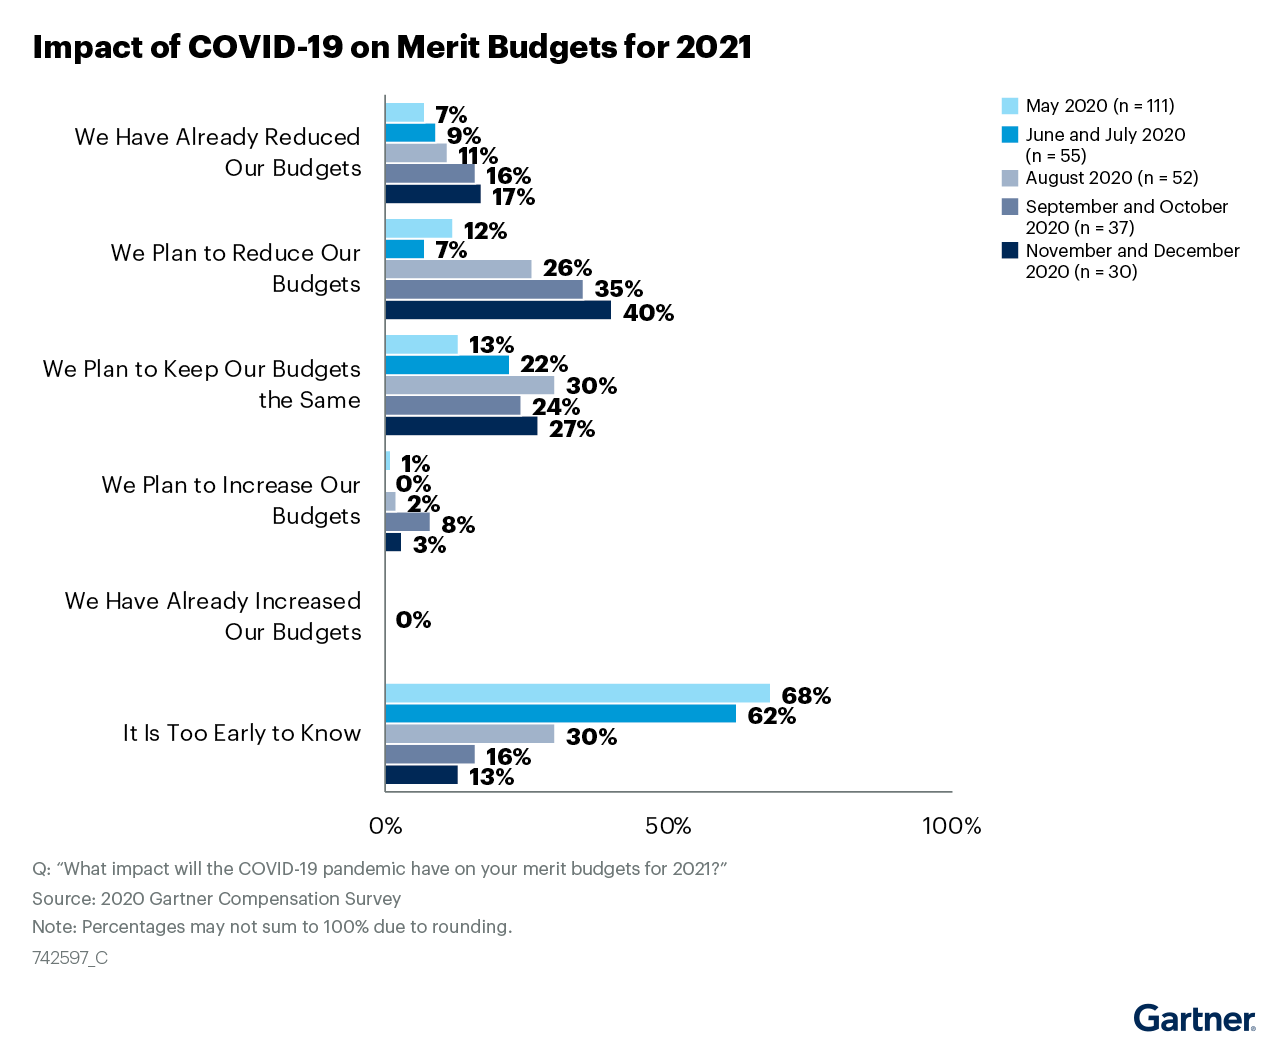 Figure 1: Impact of COVID-19 on Merit Budgets for 2021